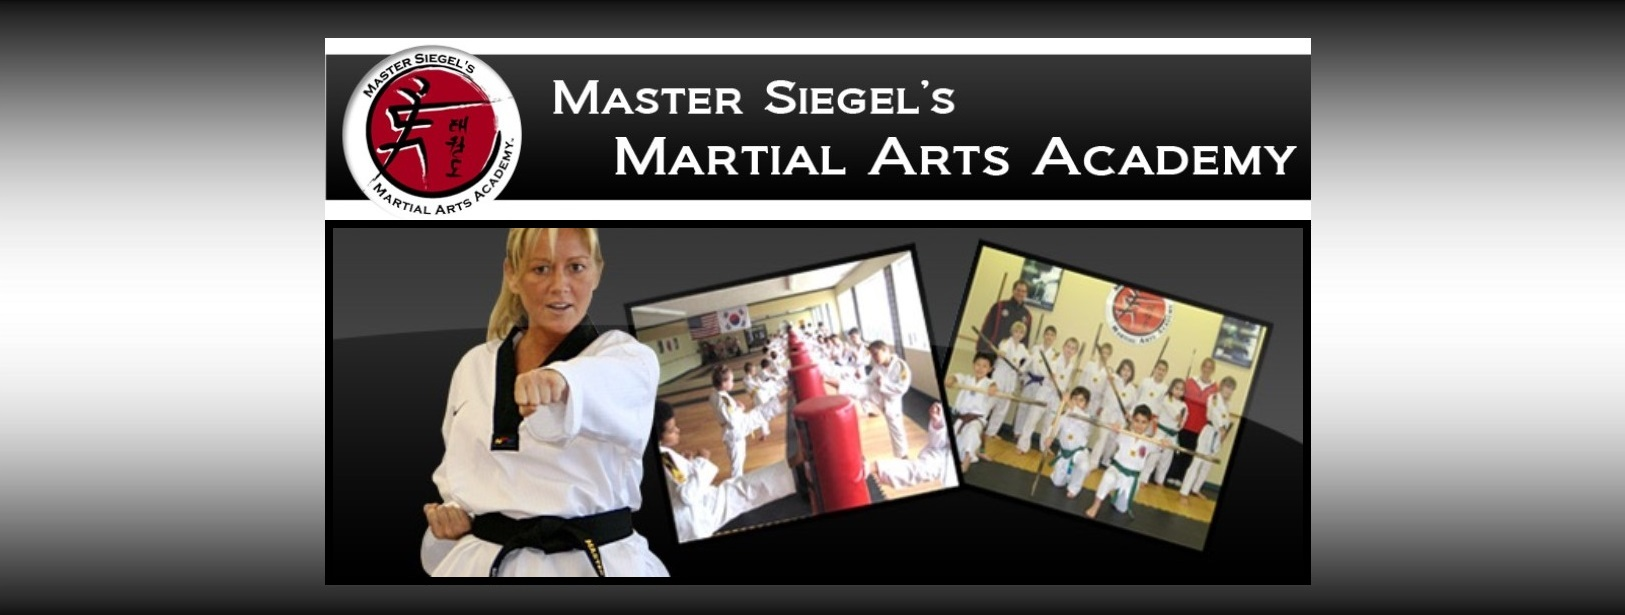 Welcome to Master Siegel's Martial Arts Academy